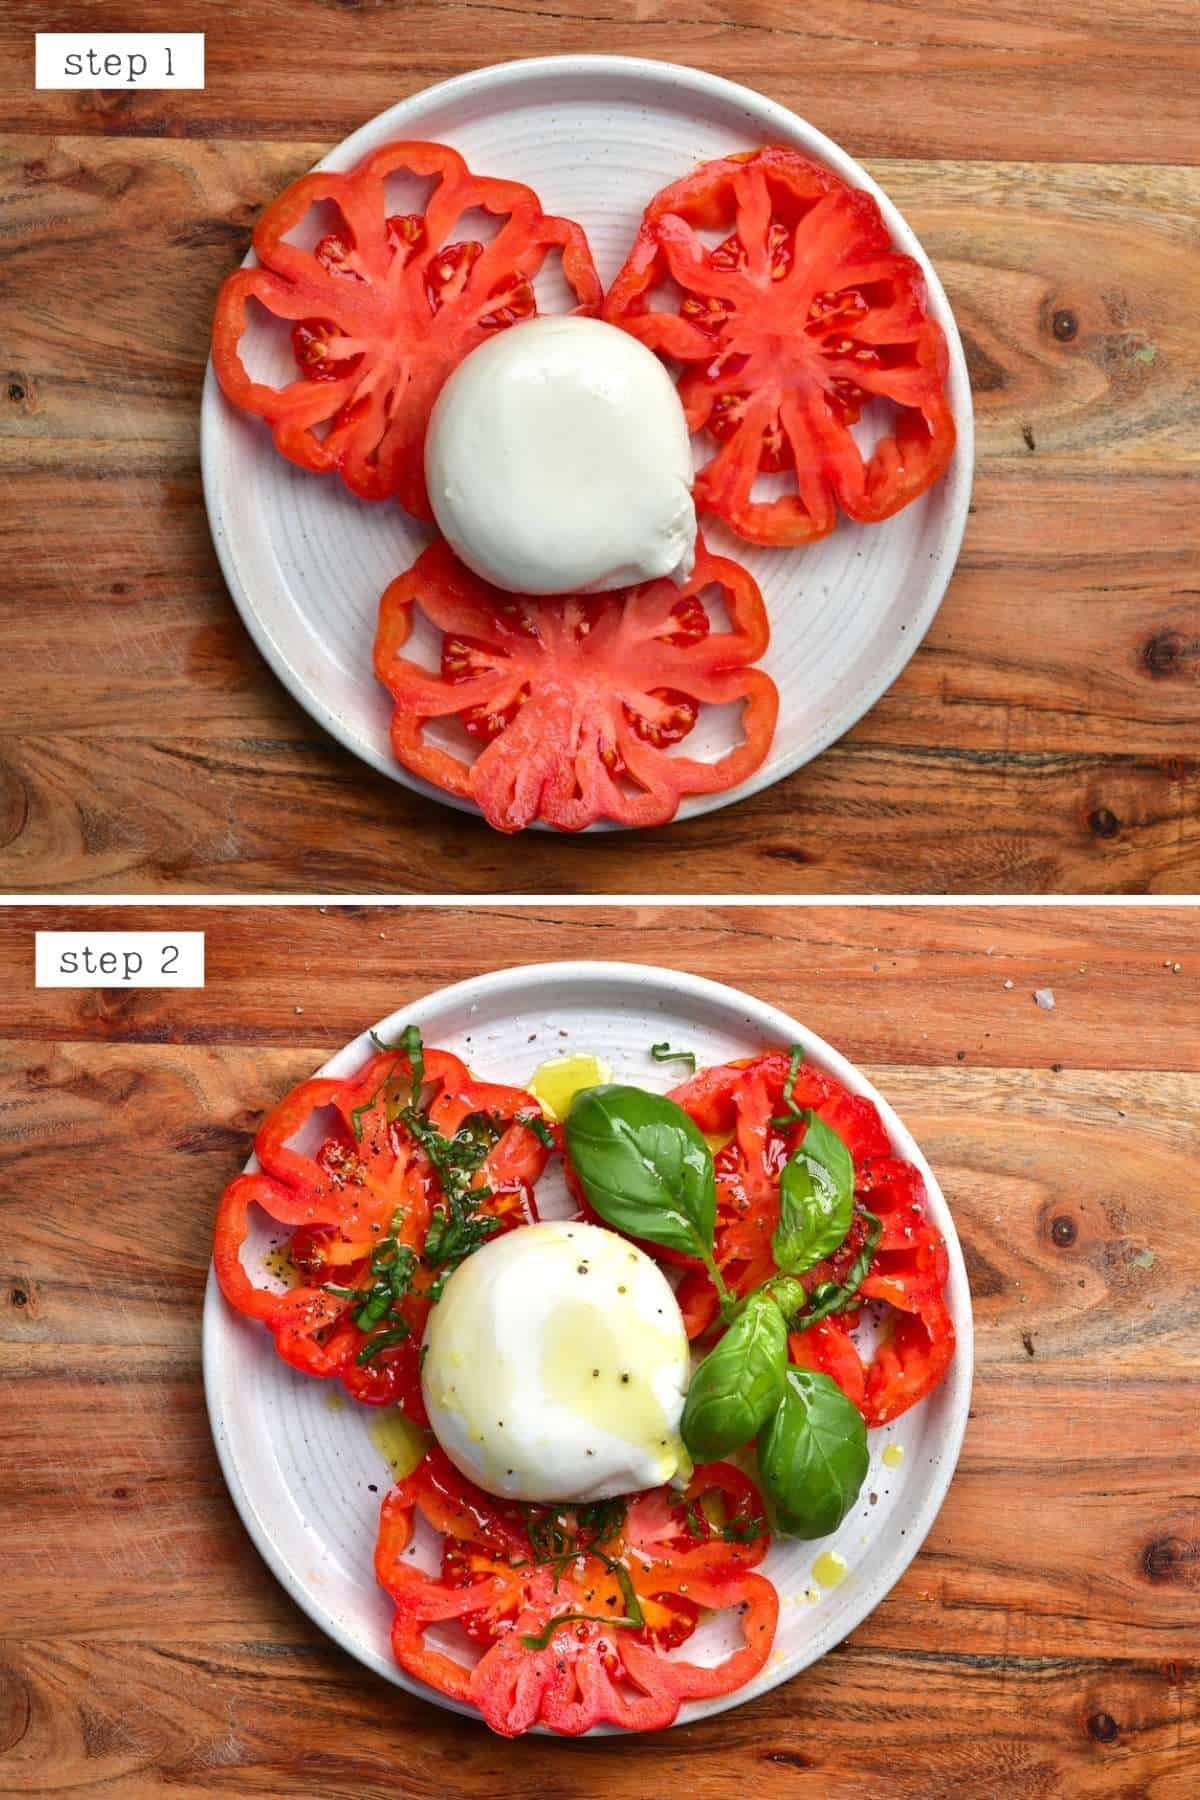 Steps for making burrata tomato salad